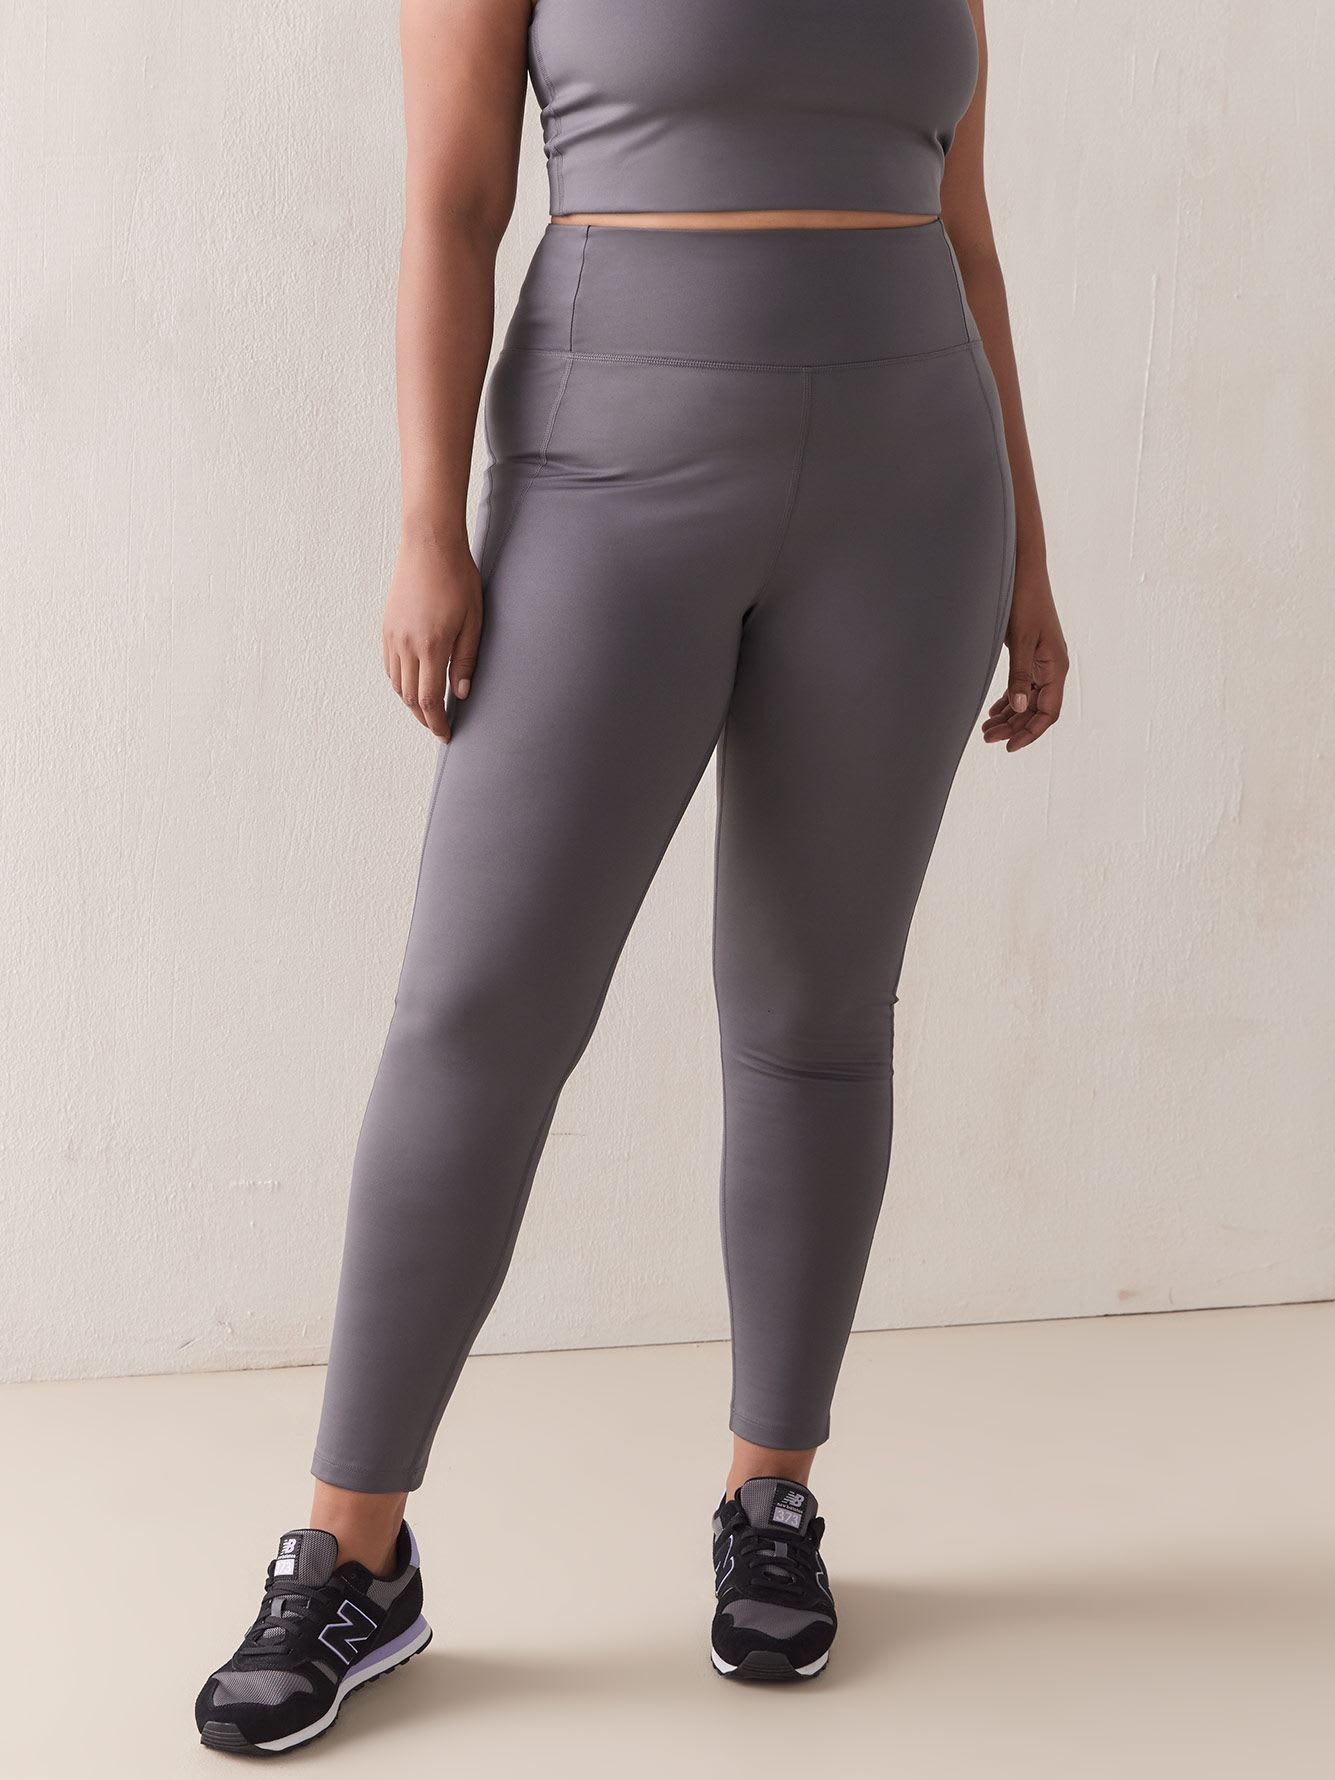 Legging de compression taille haute - Girlfriend Collective